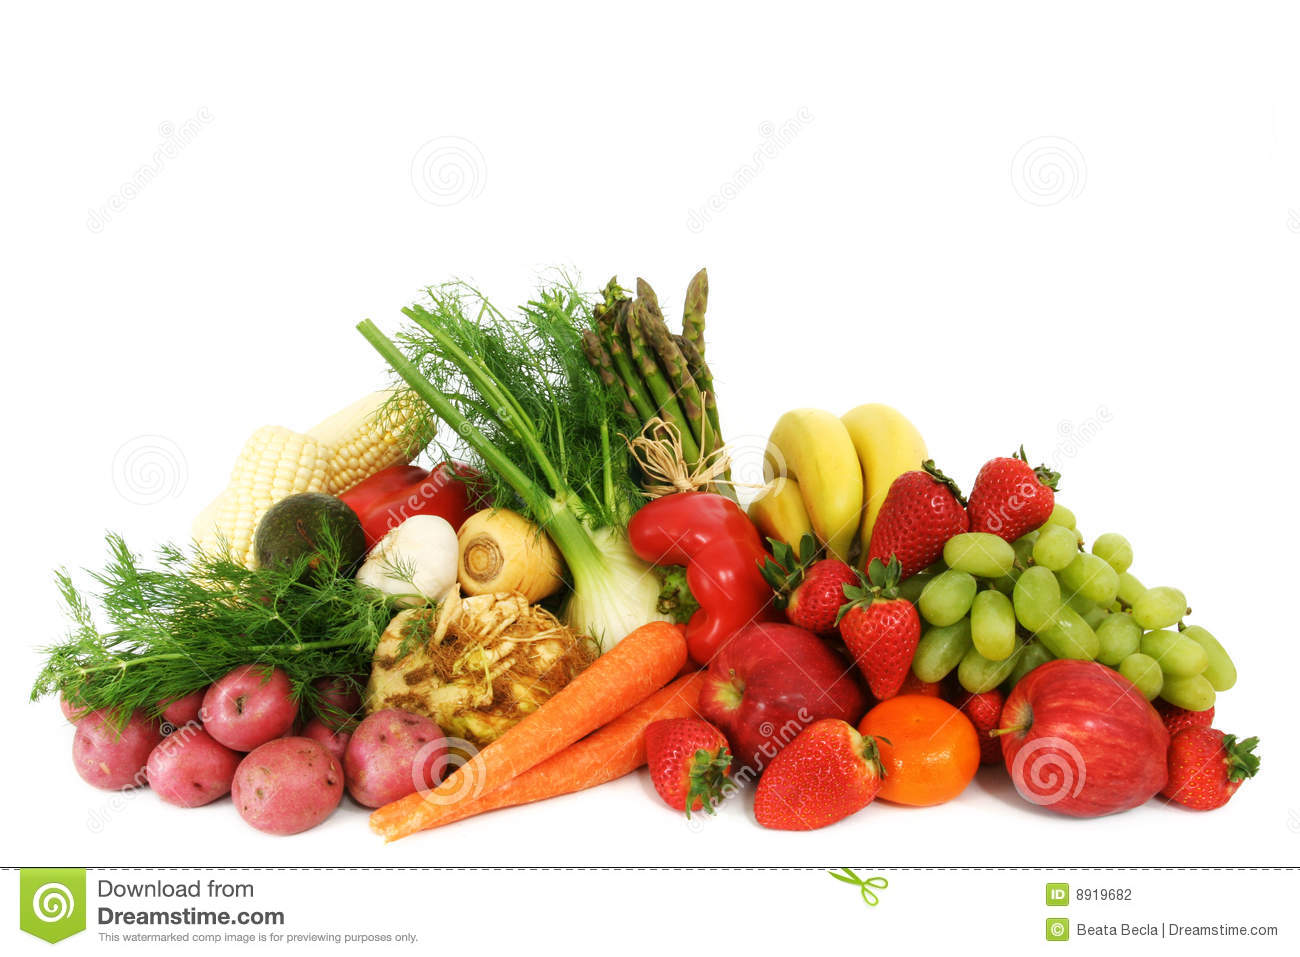 meat and fruit diet which fruits are healthy